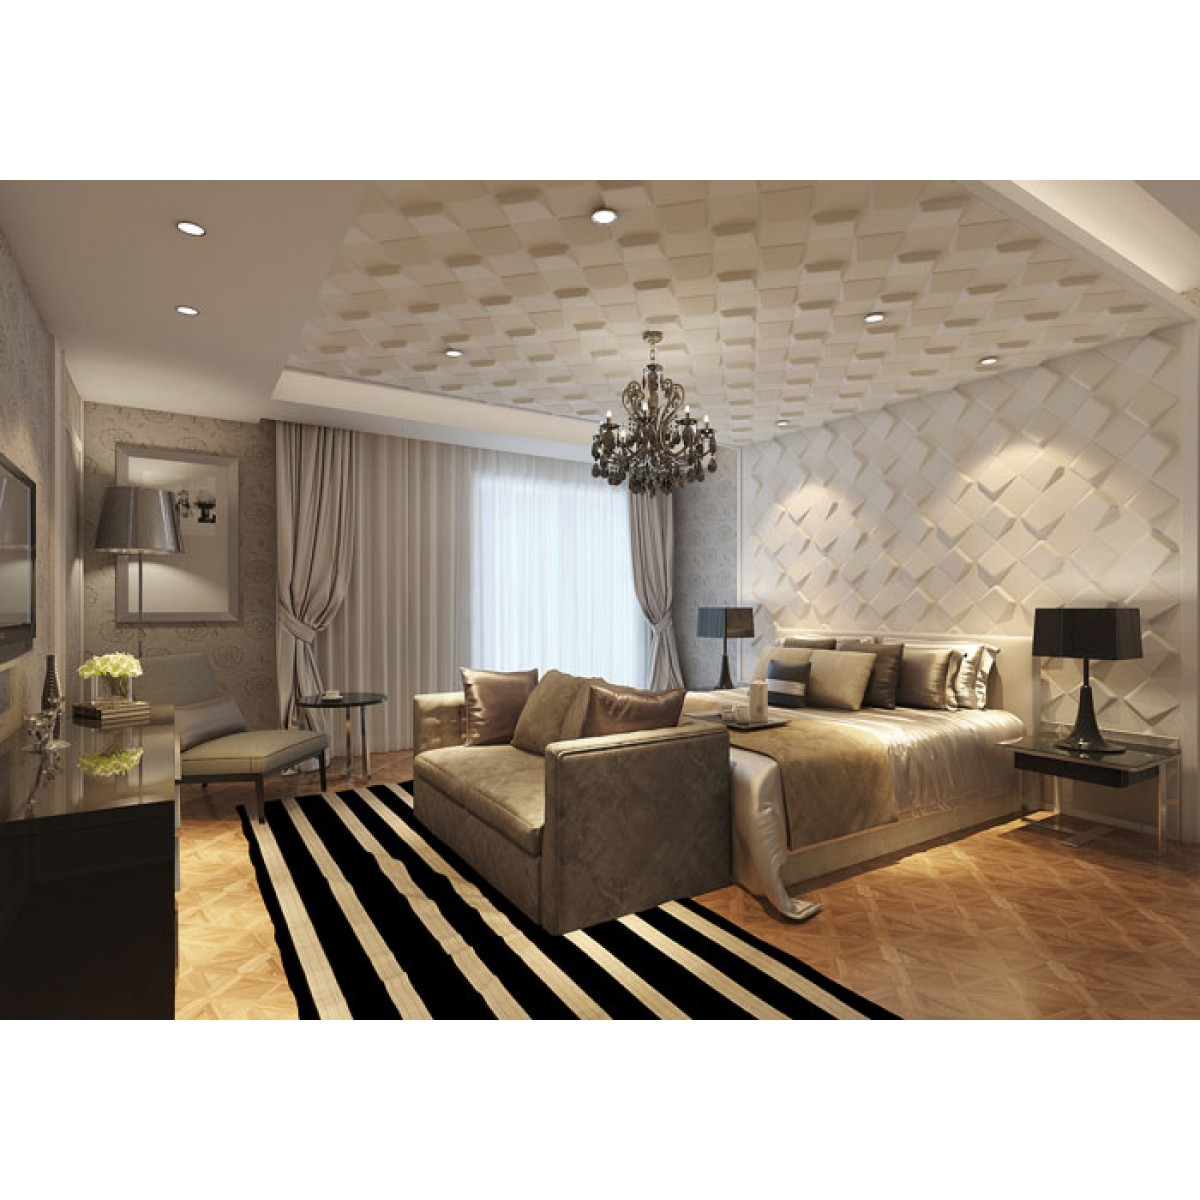 Space design 3d glue on wall panel for Emodern decor